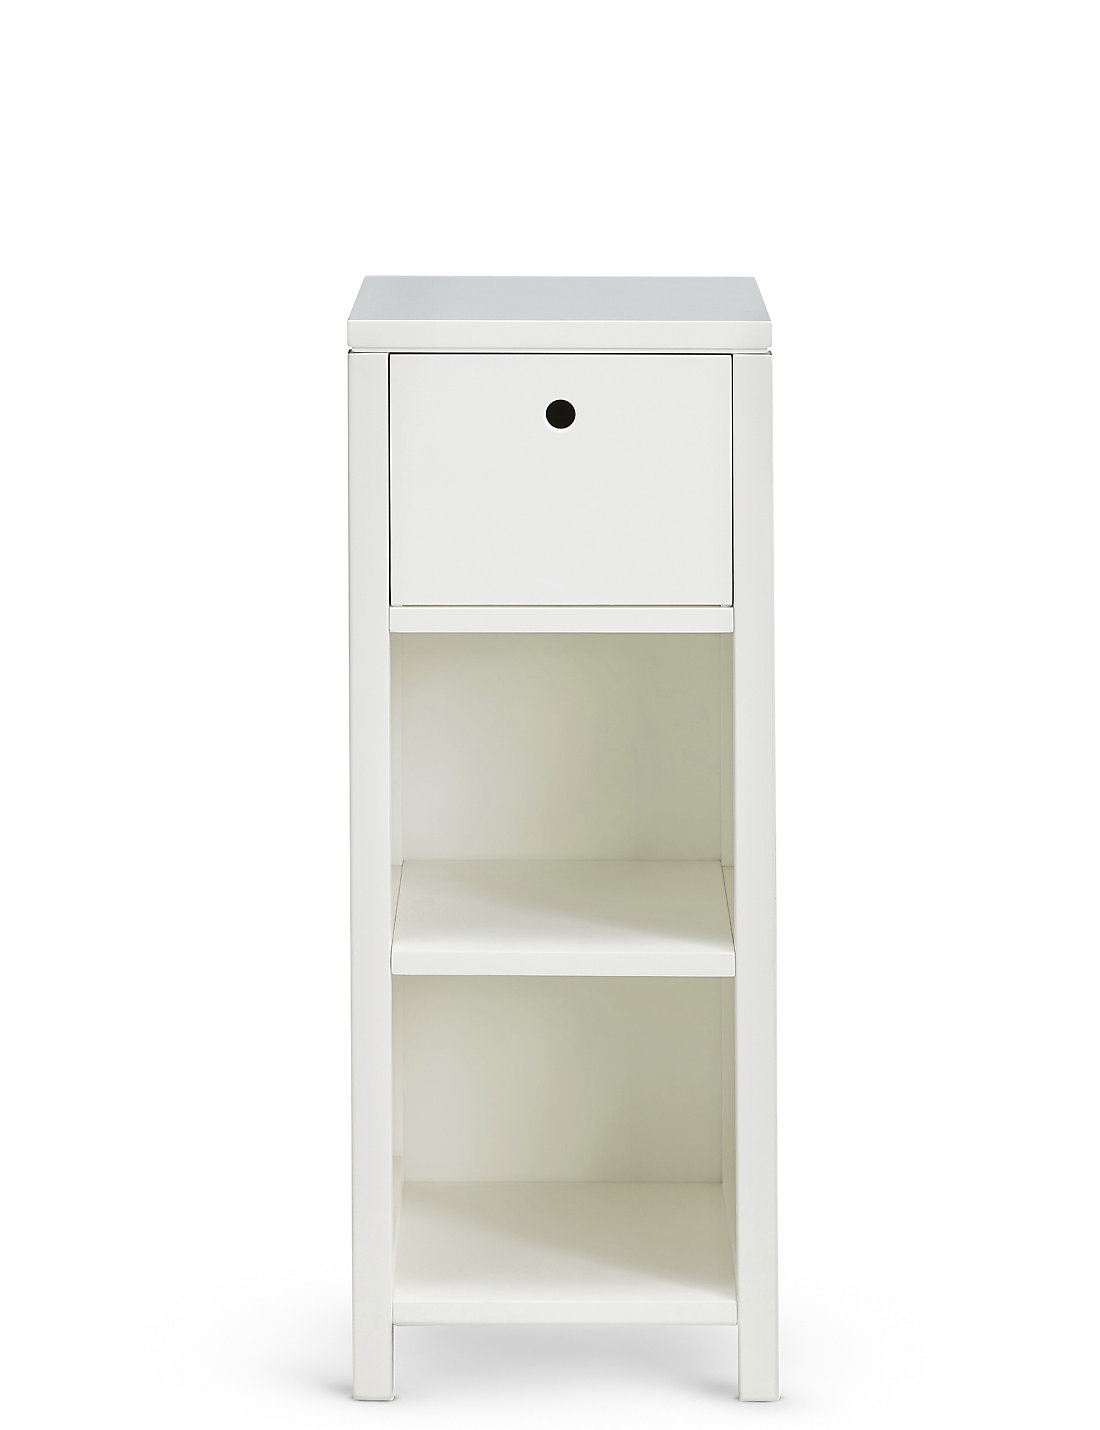 Bathroom storage units free standing - Nagoya Storage Unit White